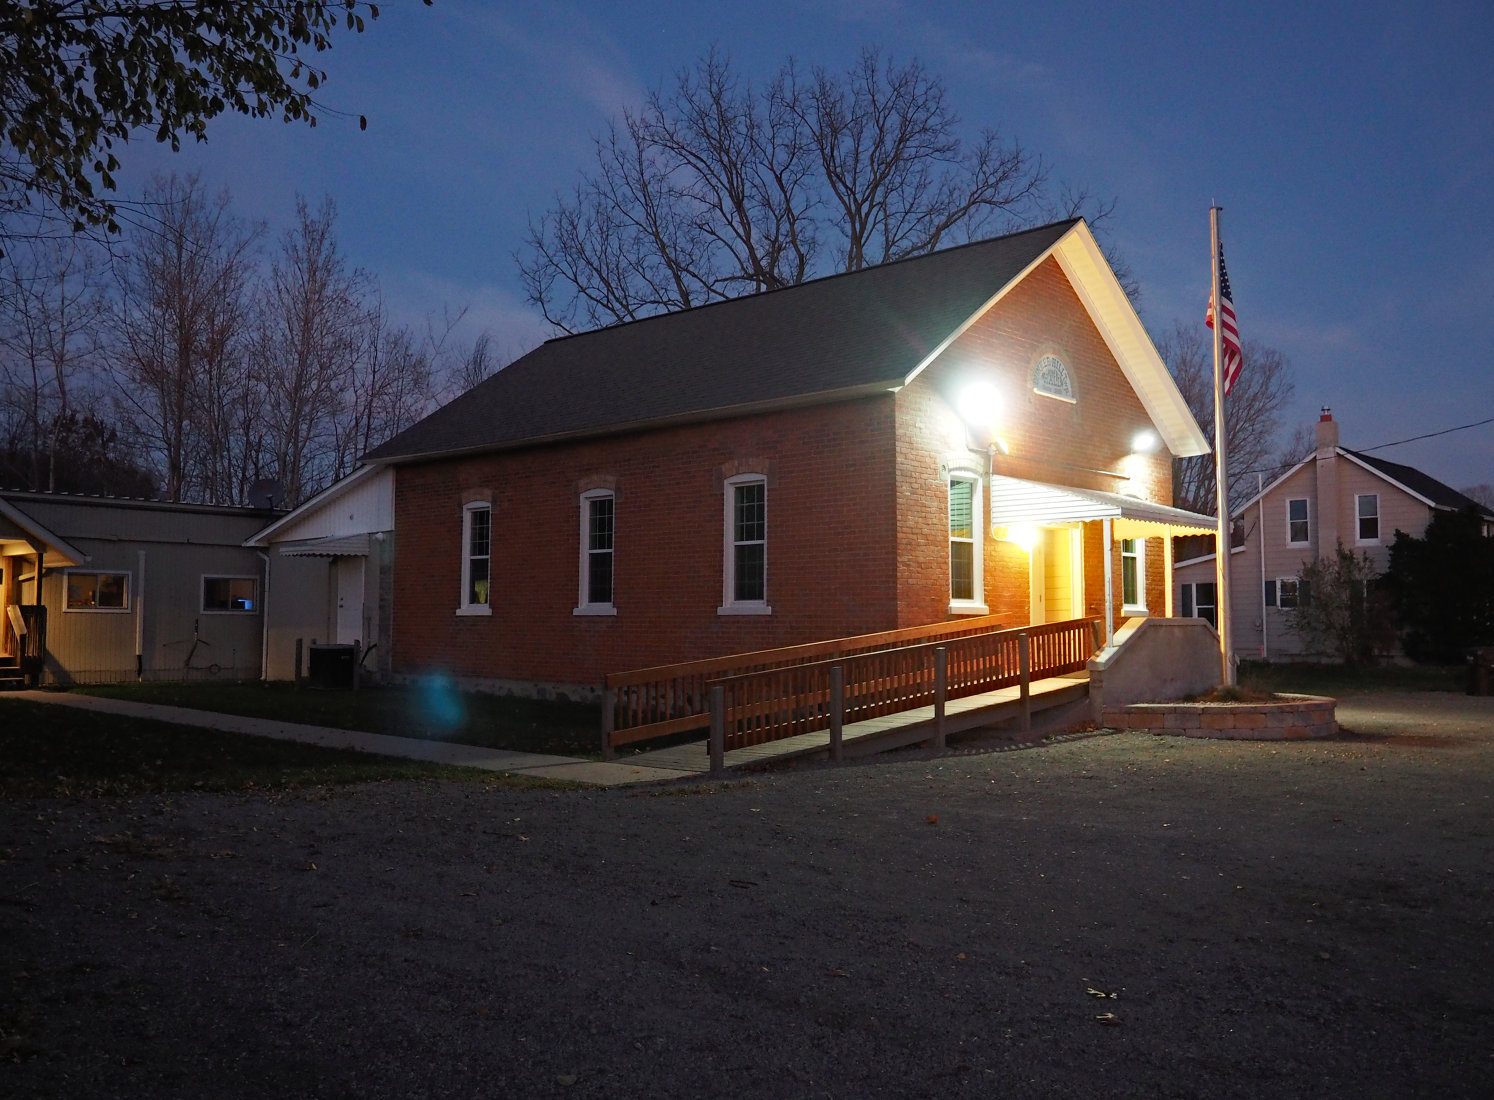 Bunker Hill Township Hall at night, after the baby shower was over, everything was cleaned up, and the last person had left. (12 November 2016)